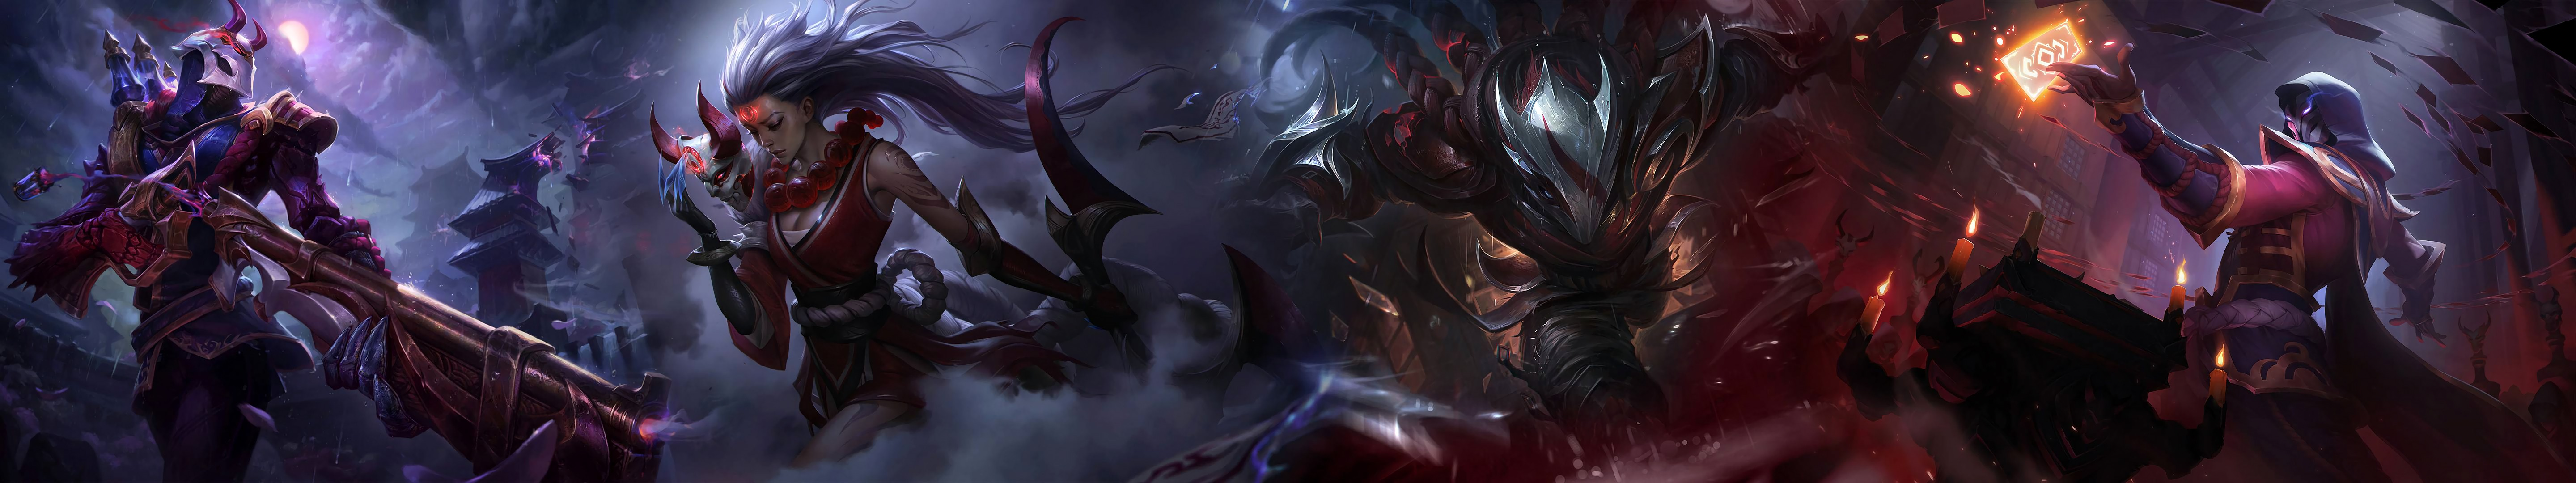 Blood Moon Twisted Fate Wallpaper Posted By Christopher Johnson